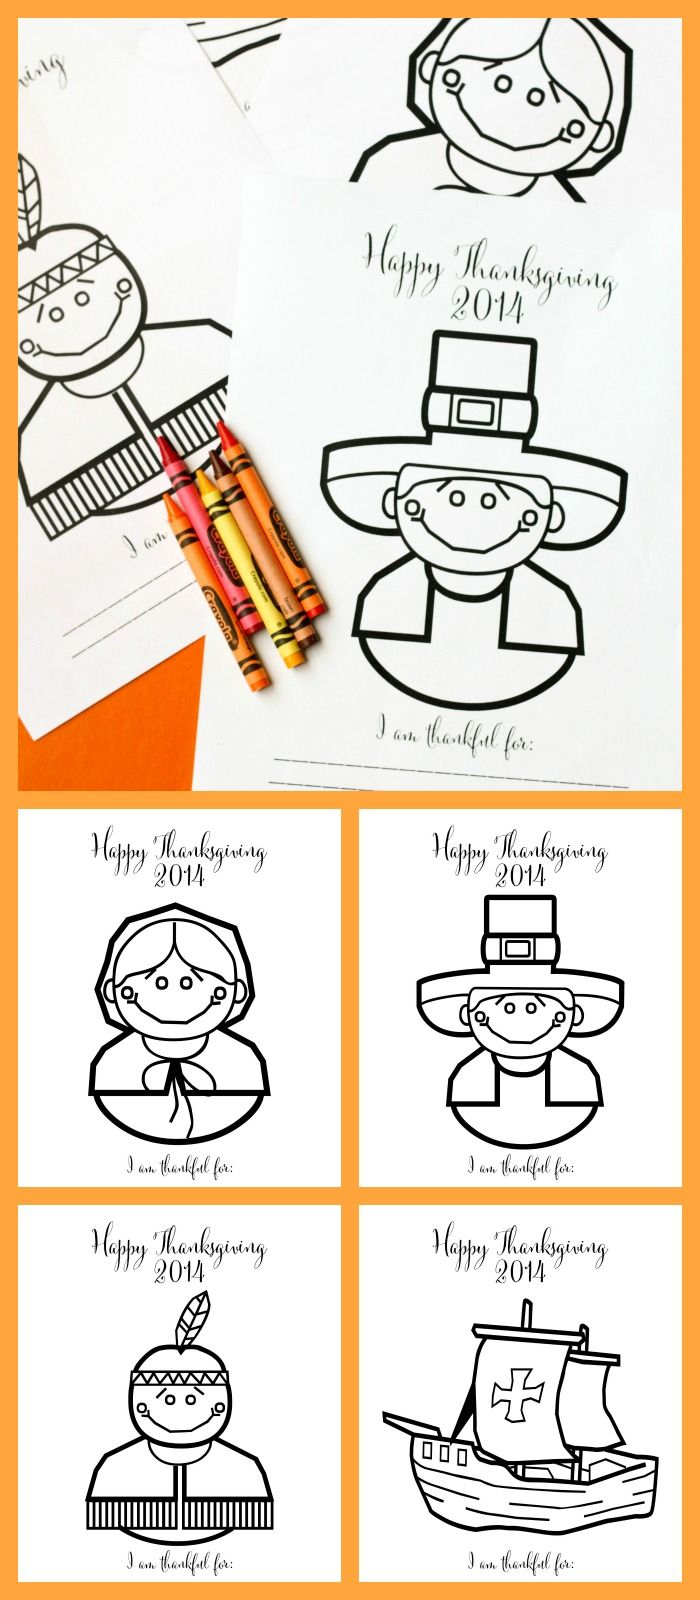 FREE Printable Thanksgiving Coloring Pages - perfect for entertaining the kiddos on Turkey Day! { lilluna.com }